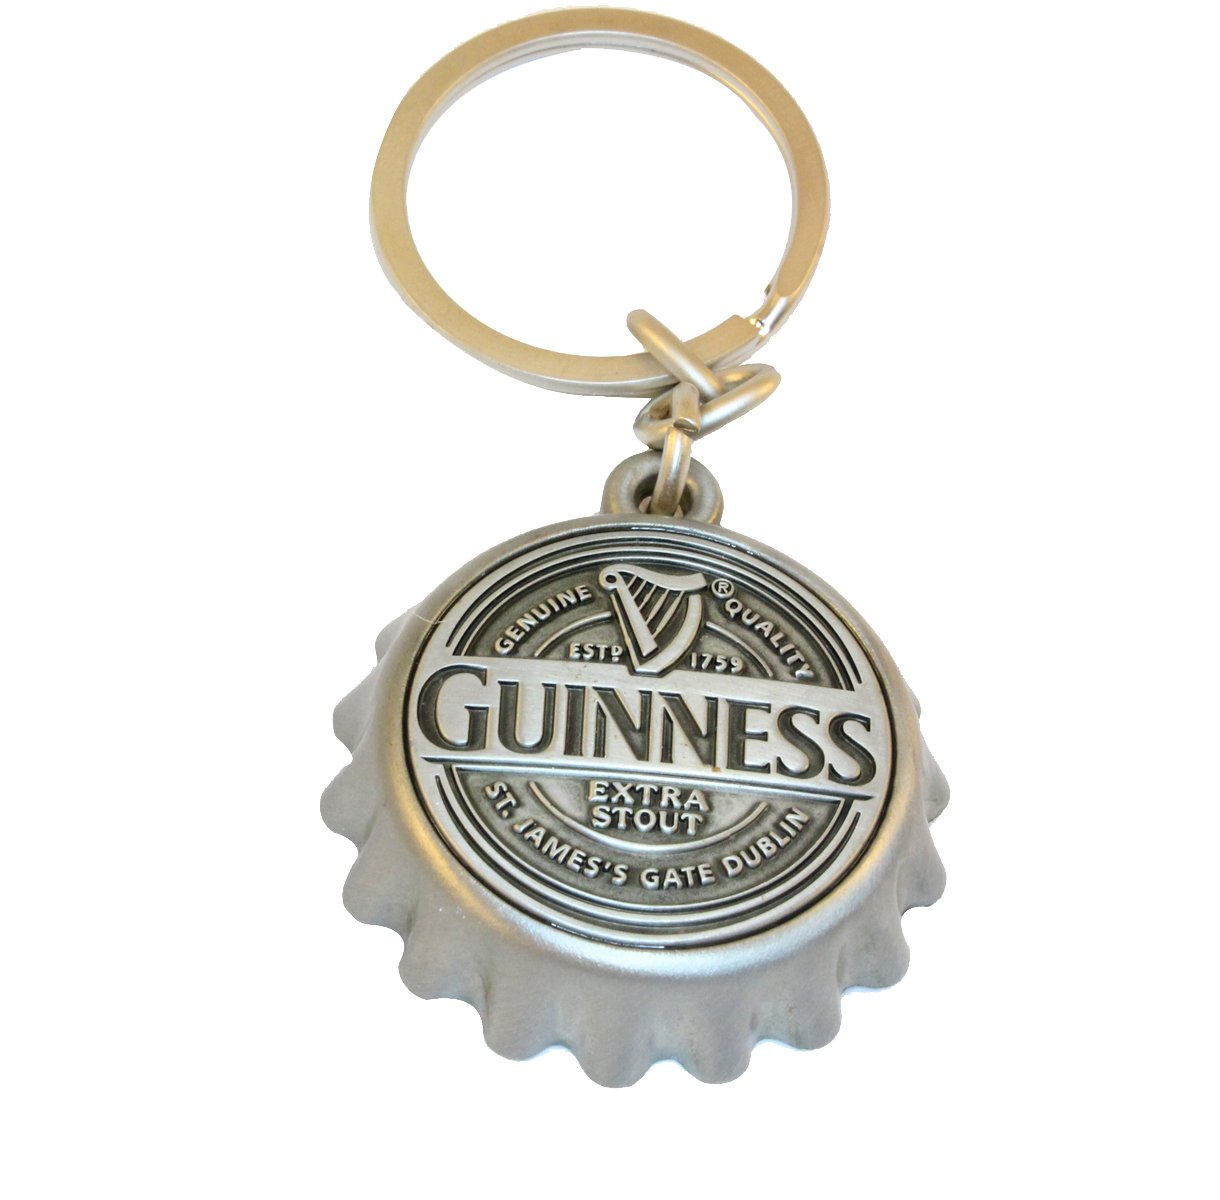 Guinness Keychain With Guinness Bottle Cap Embossed With Guinness Logo GNS2080